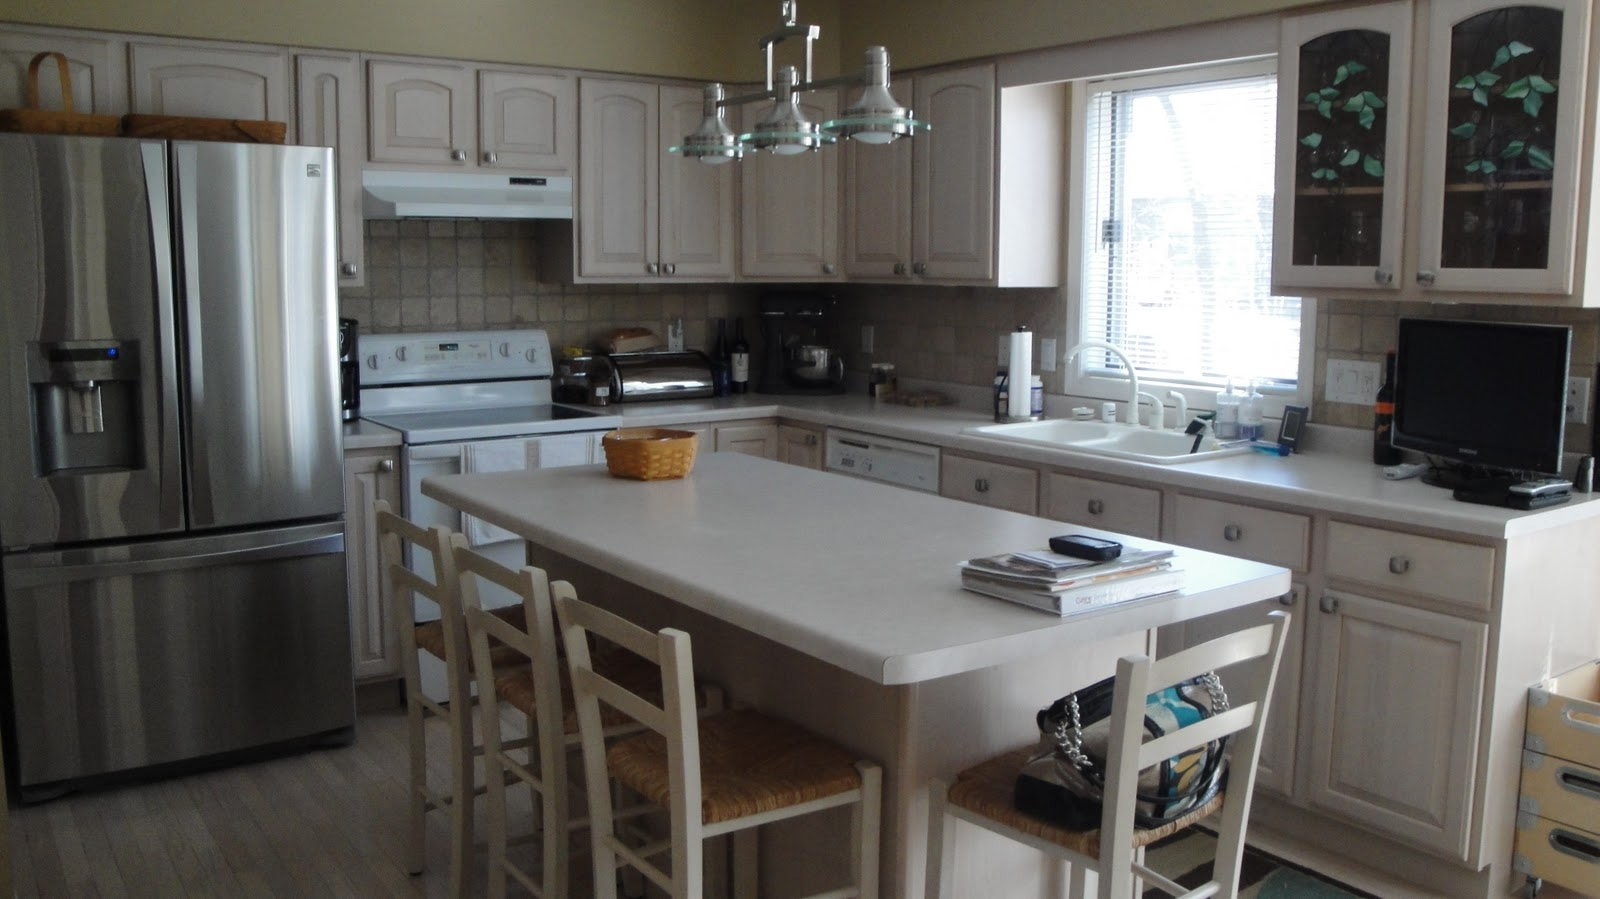 Non Matching Kitchen Cabinetsmusings from americas dairyland in the kitchen